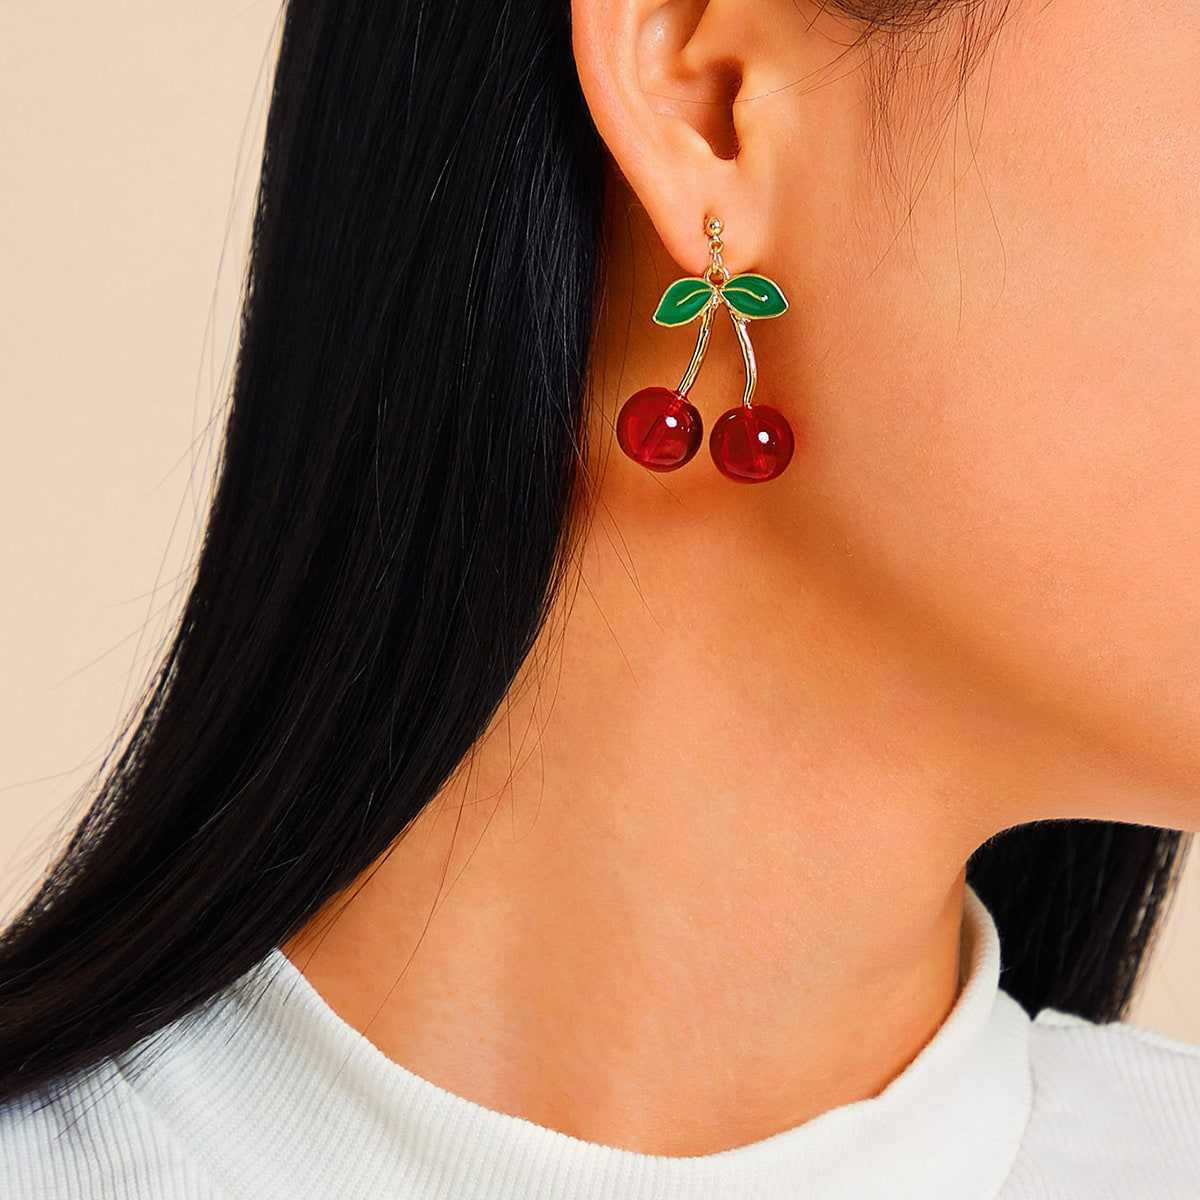 Cherry Decor Drop Earrings 1pair in Multicolor by ROMWE on GOOFASH